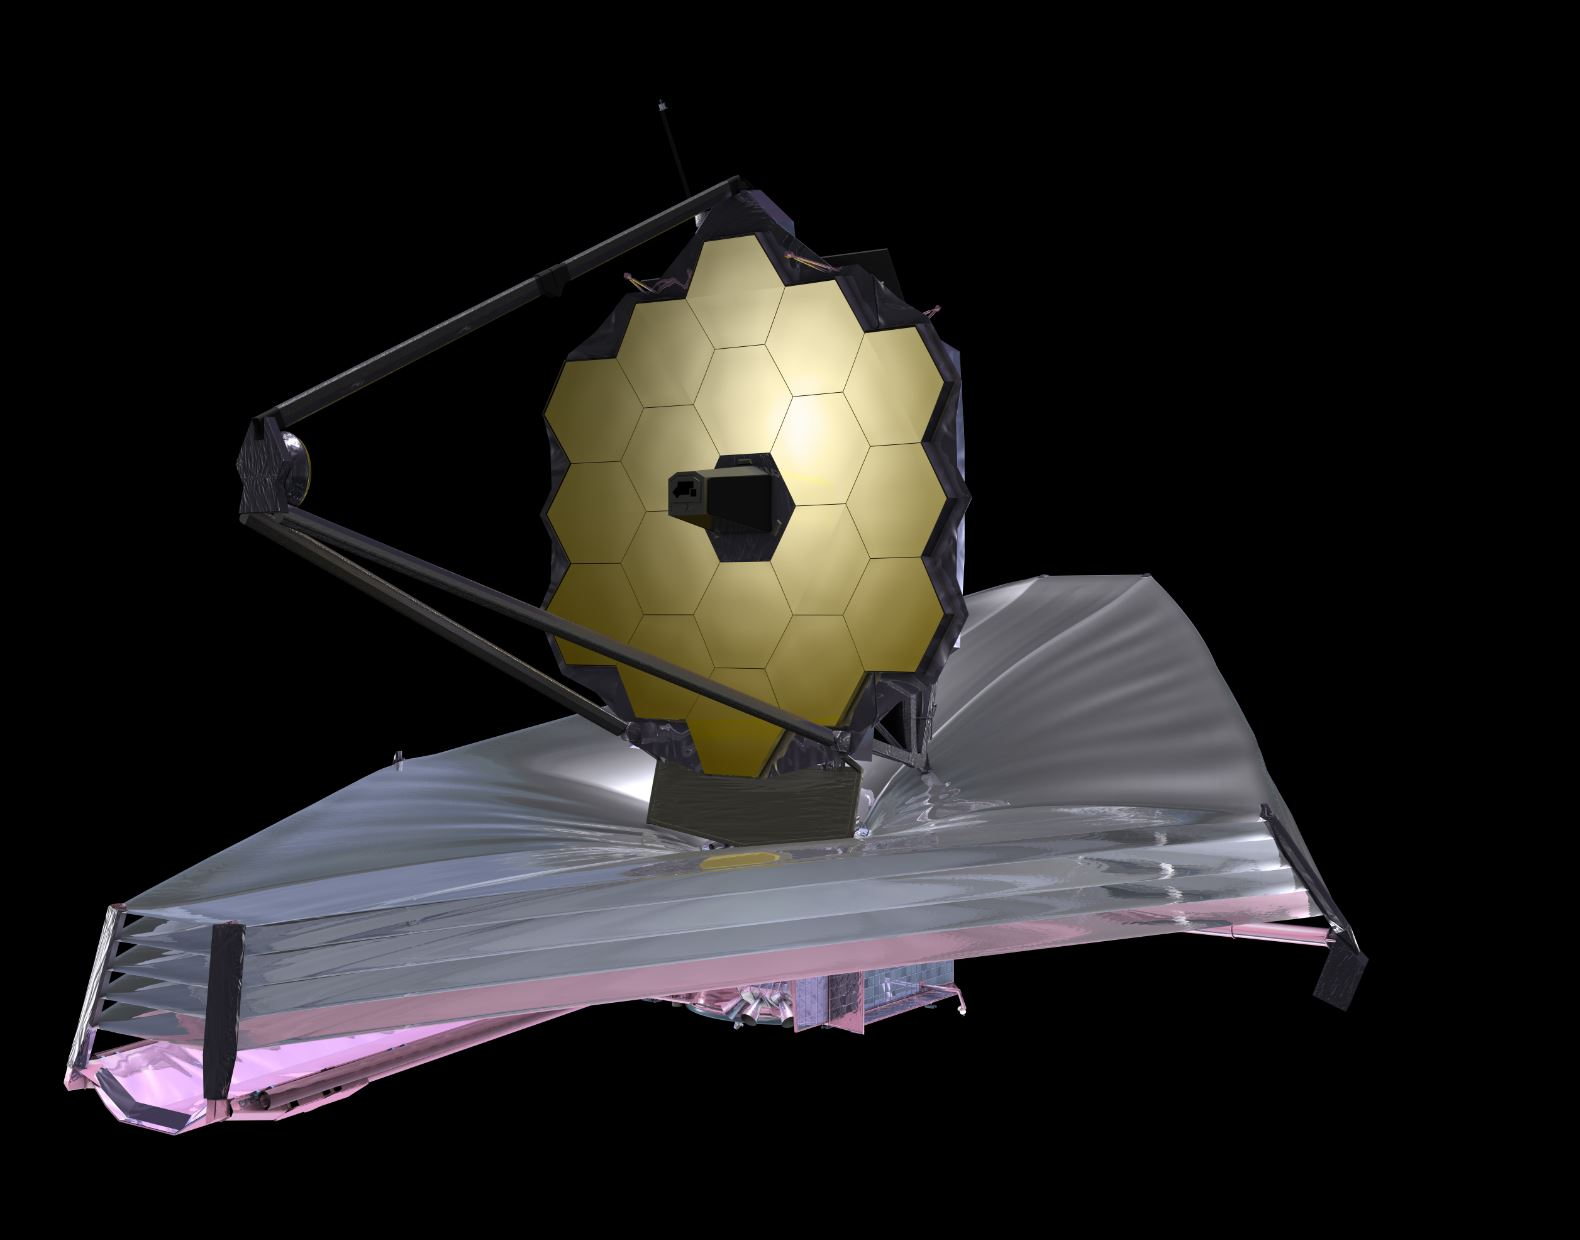 An artist's impression of the JWST with its components deployed - Image Credit:  NASA via Wikimedia Commons